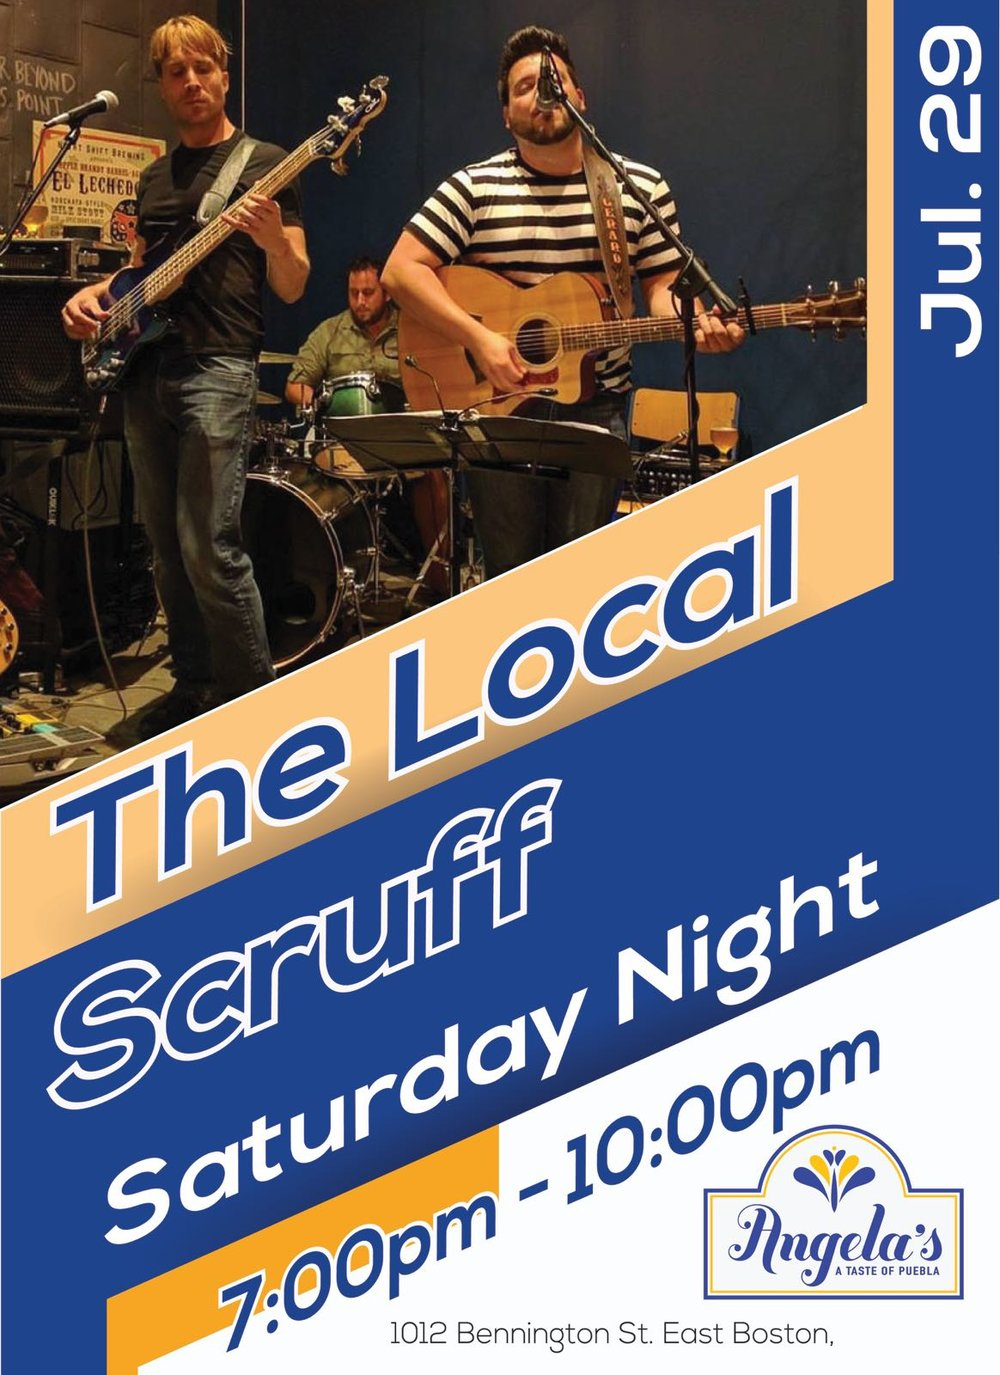 We are... - ...a feel-good band that rocks soulful covers with an authentic,cohesive vibe. Listenable and catchy, our sets have a signature groove. Mix that with our laid-back likeability and we create a fun, lively, and enthusiastic crowd wherever we play. -The Local ScruffYou can find more info at their official website.www.thelocalscruff.comLet's party this July at Angela's Cafe Orient Heights.